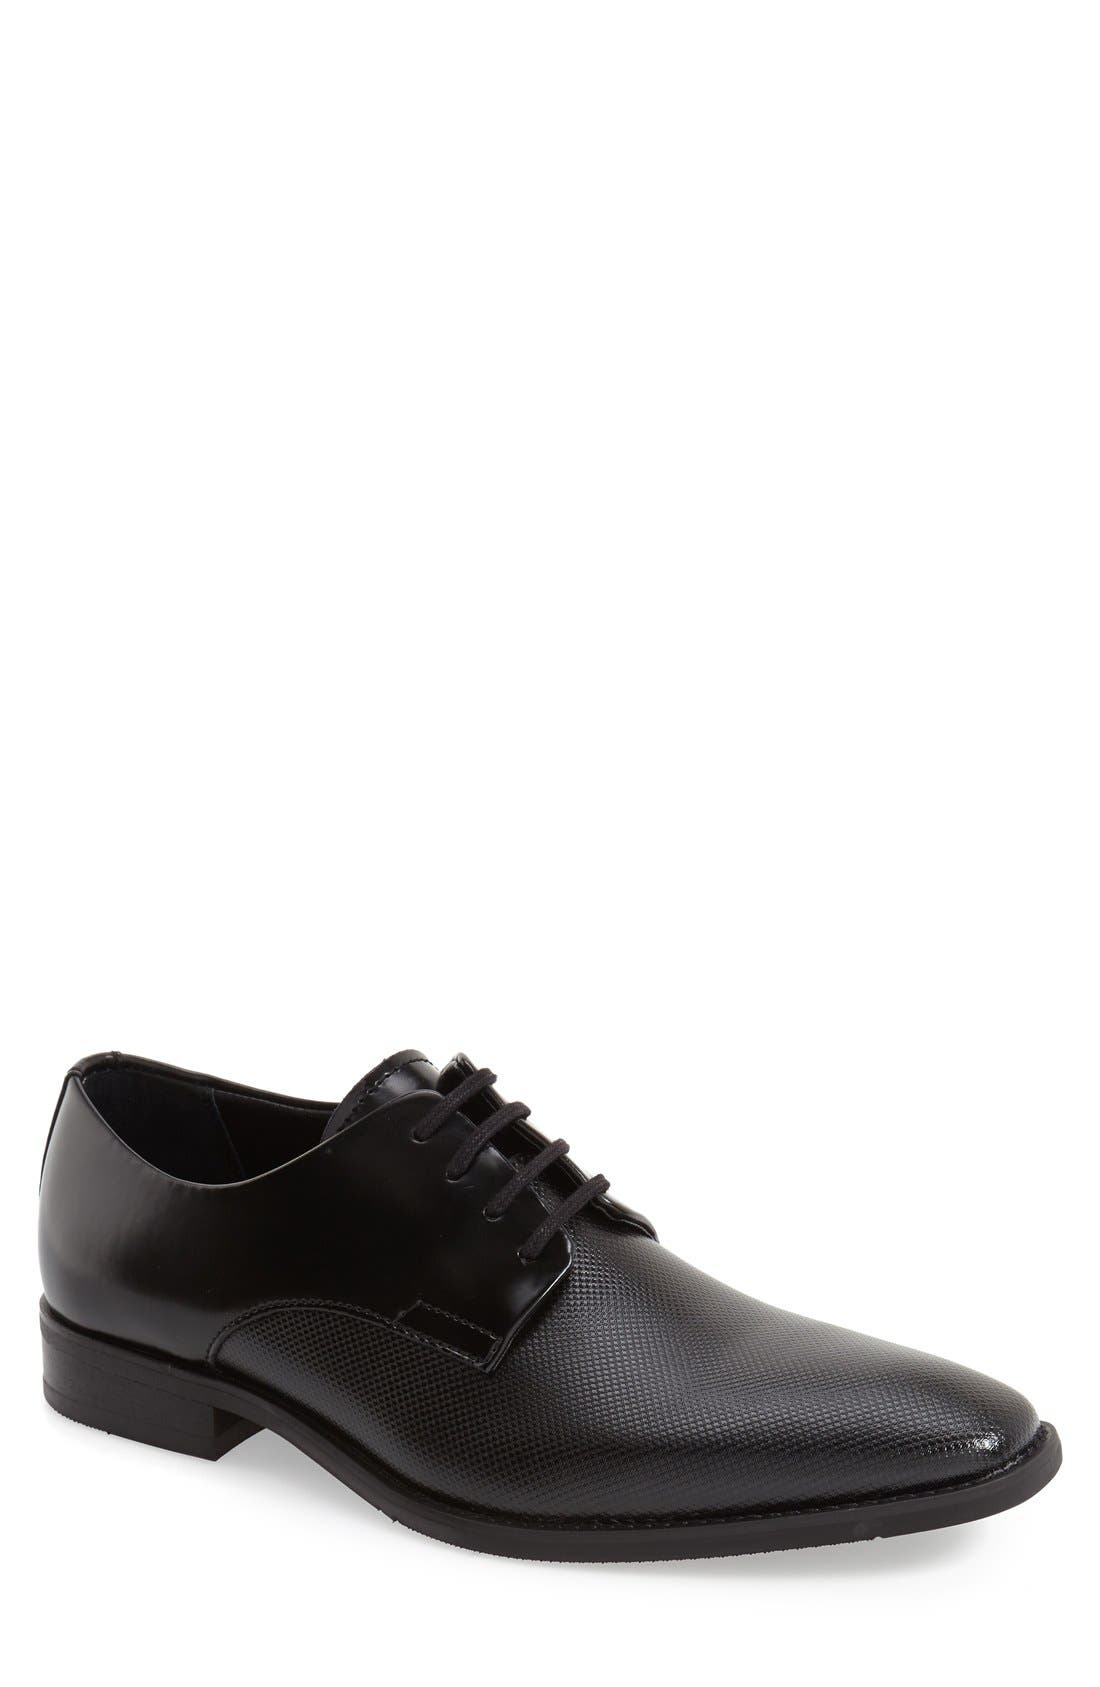 'Ramses' Plain Toe Derby,                             Main thumbnail 1, color,                             Black Leather